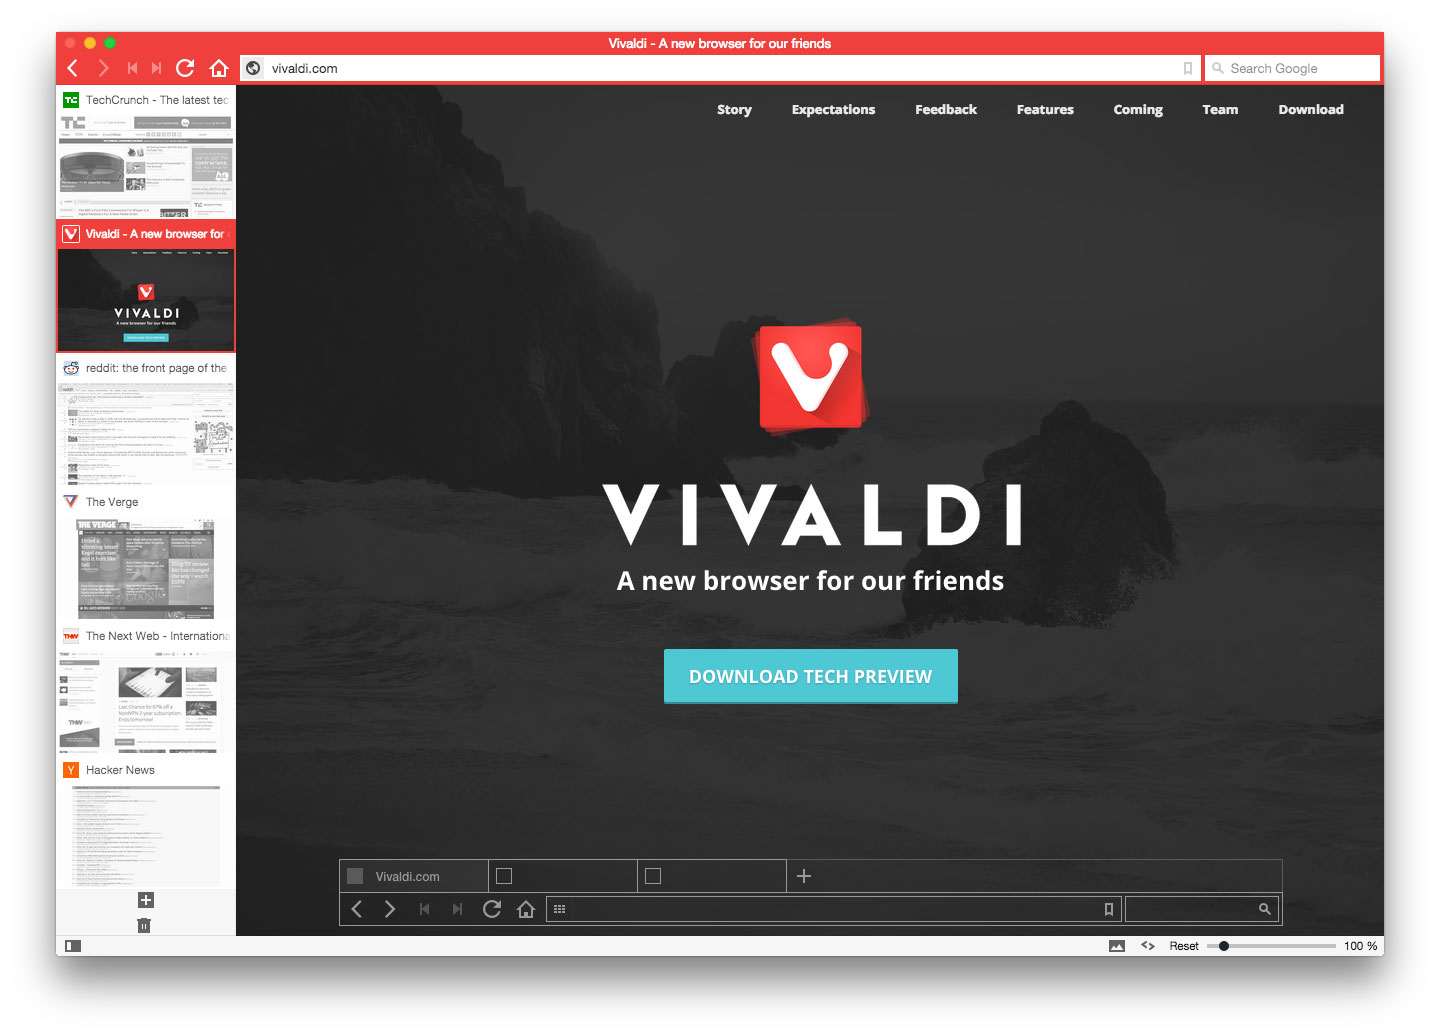 Vivaldi lets people organize browser tabs visually down the left edge of the screen.